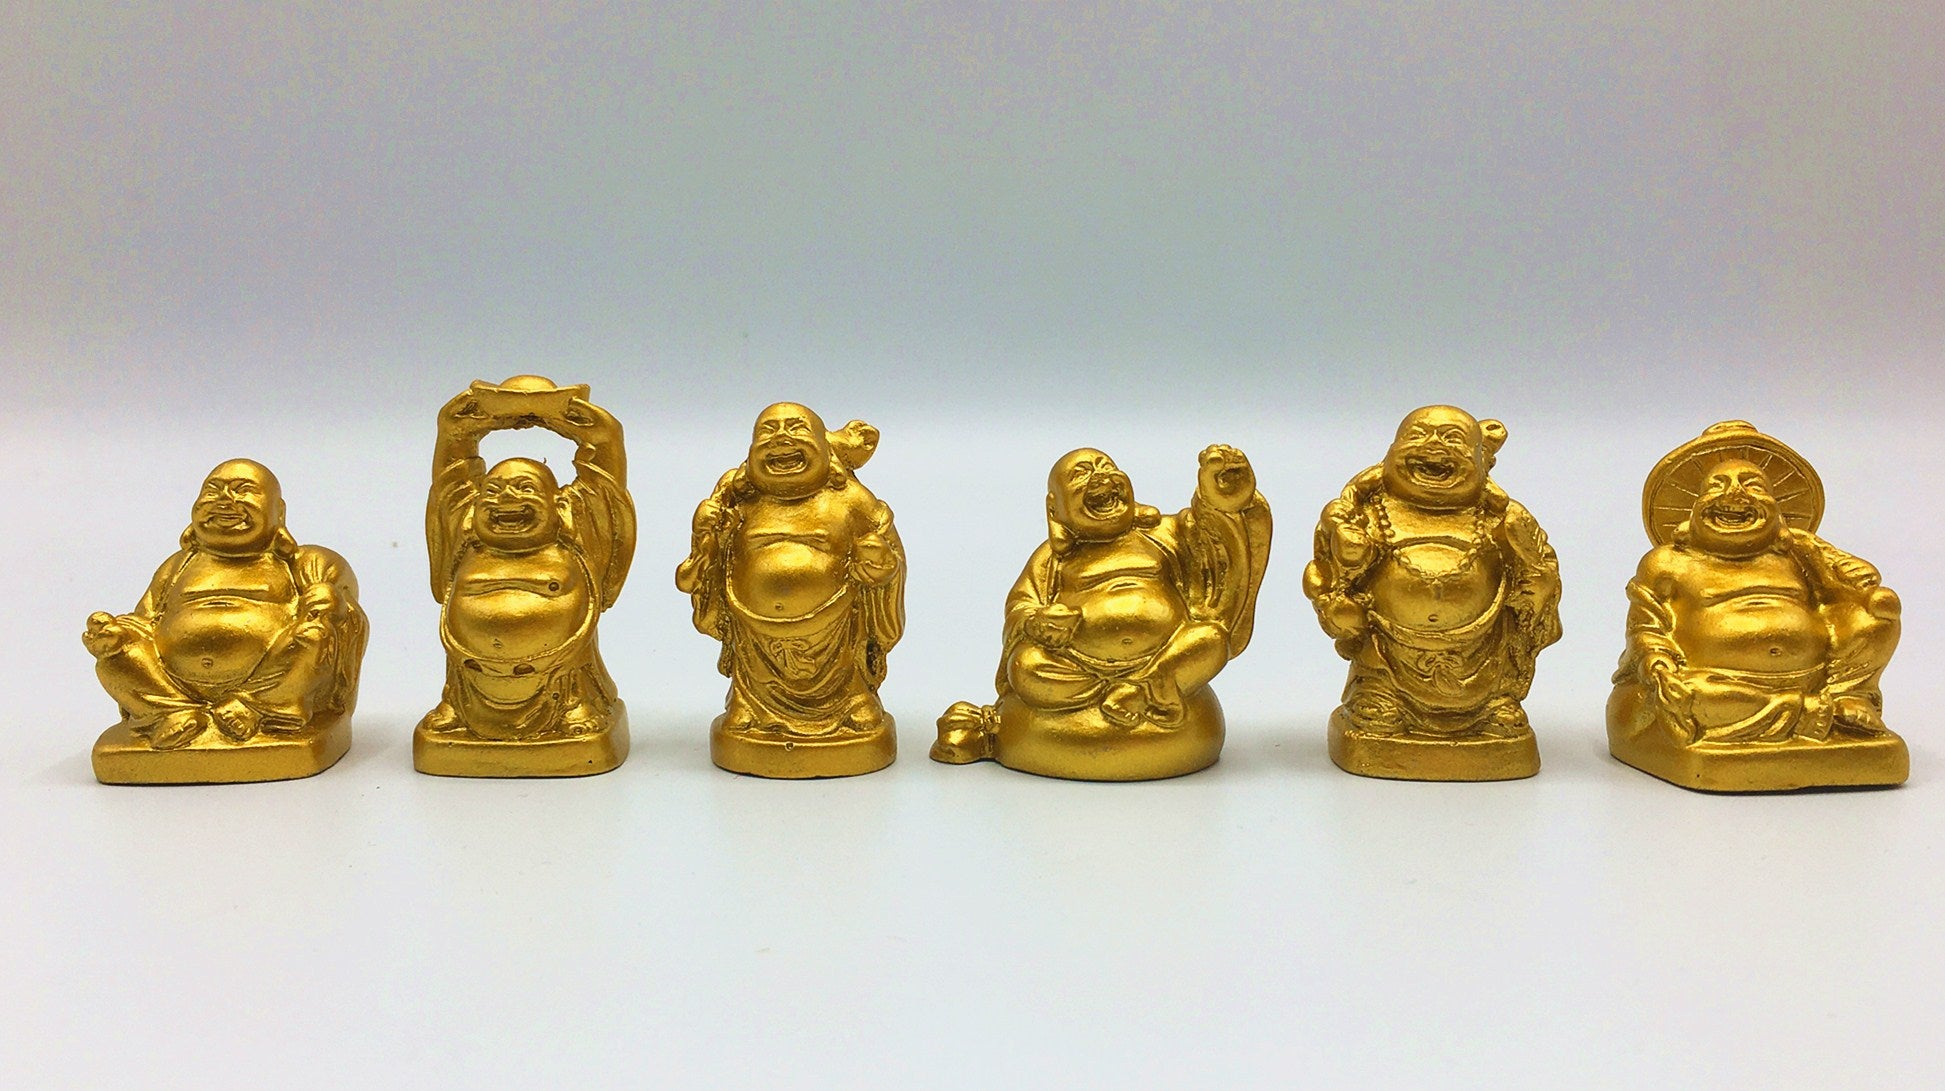 Laughing Buddha Figurines | Lucky Happy Buddha | LAUGHING BUDDHA Statue |2'' Set of 6 Gift